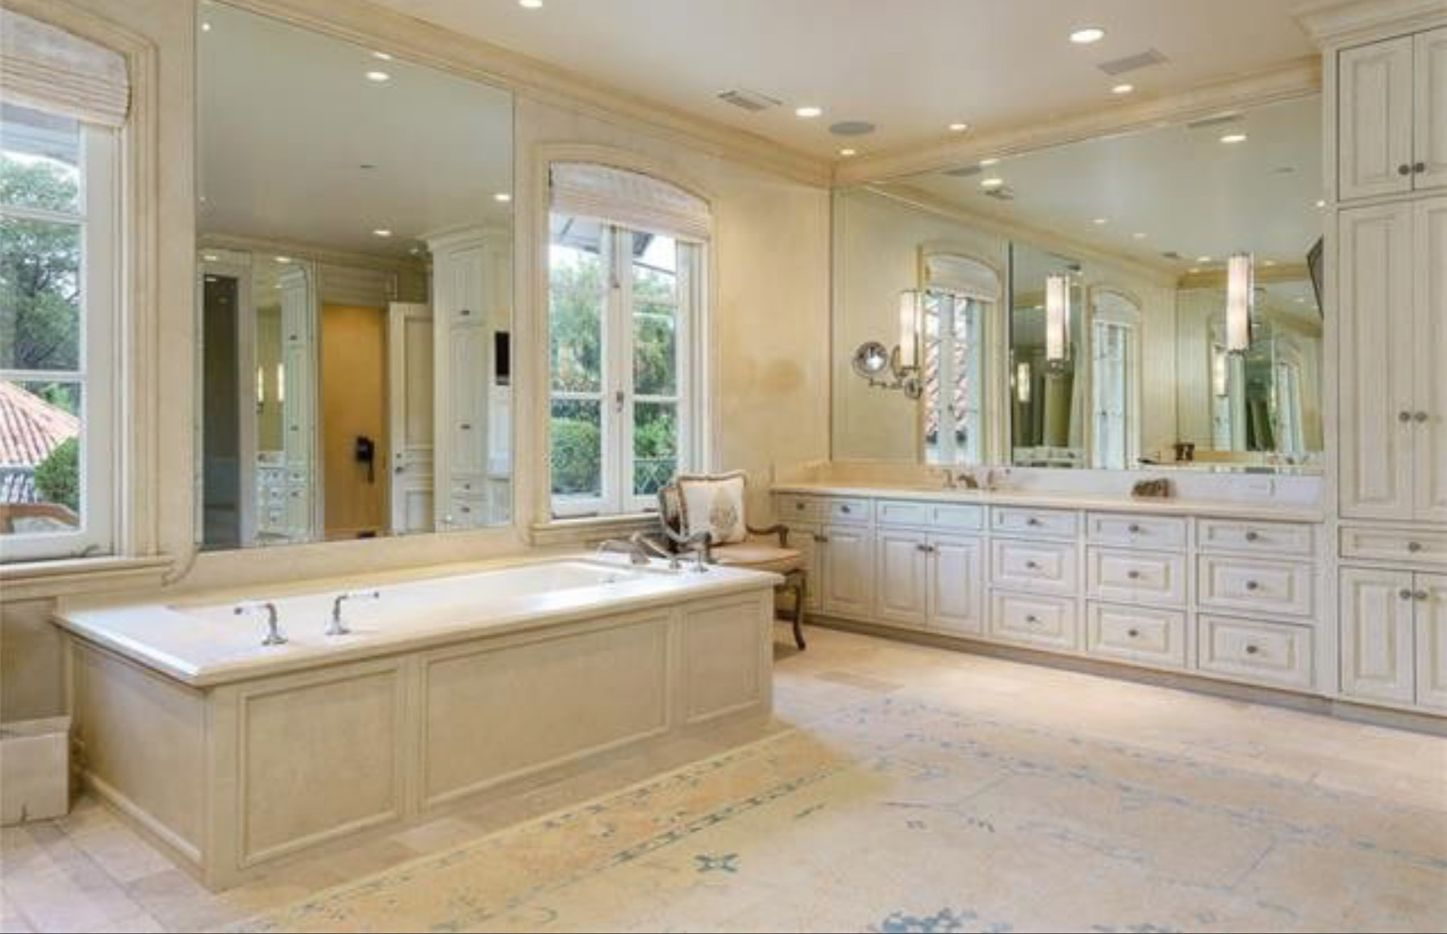 The bathroom in the Pickens mansion.